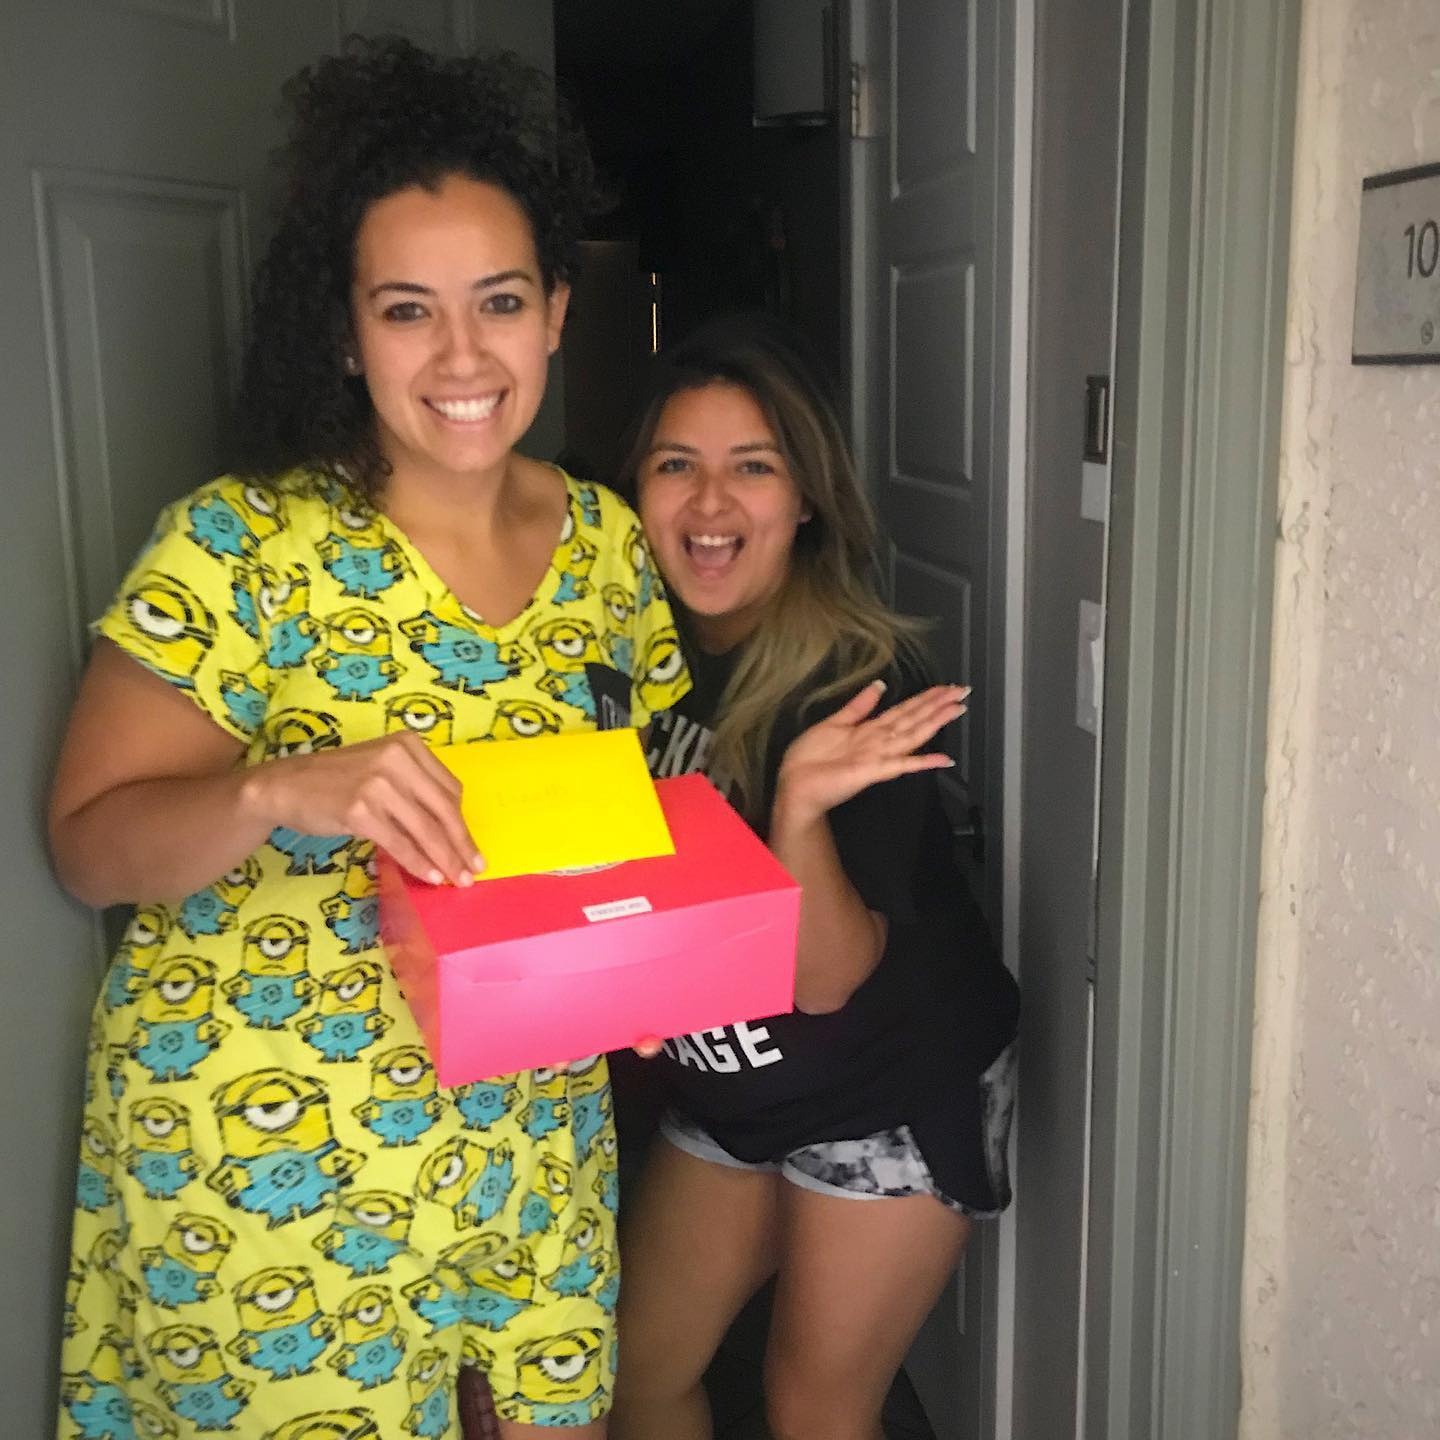 Two girls receiving a birthday gift delivered in Las Vegas